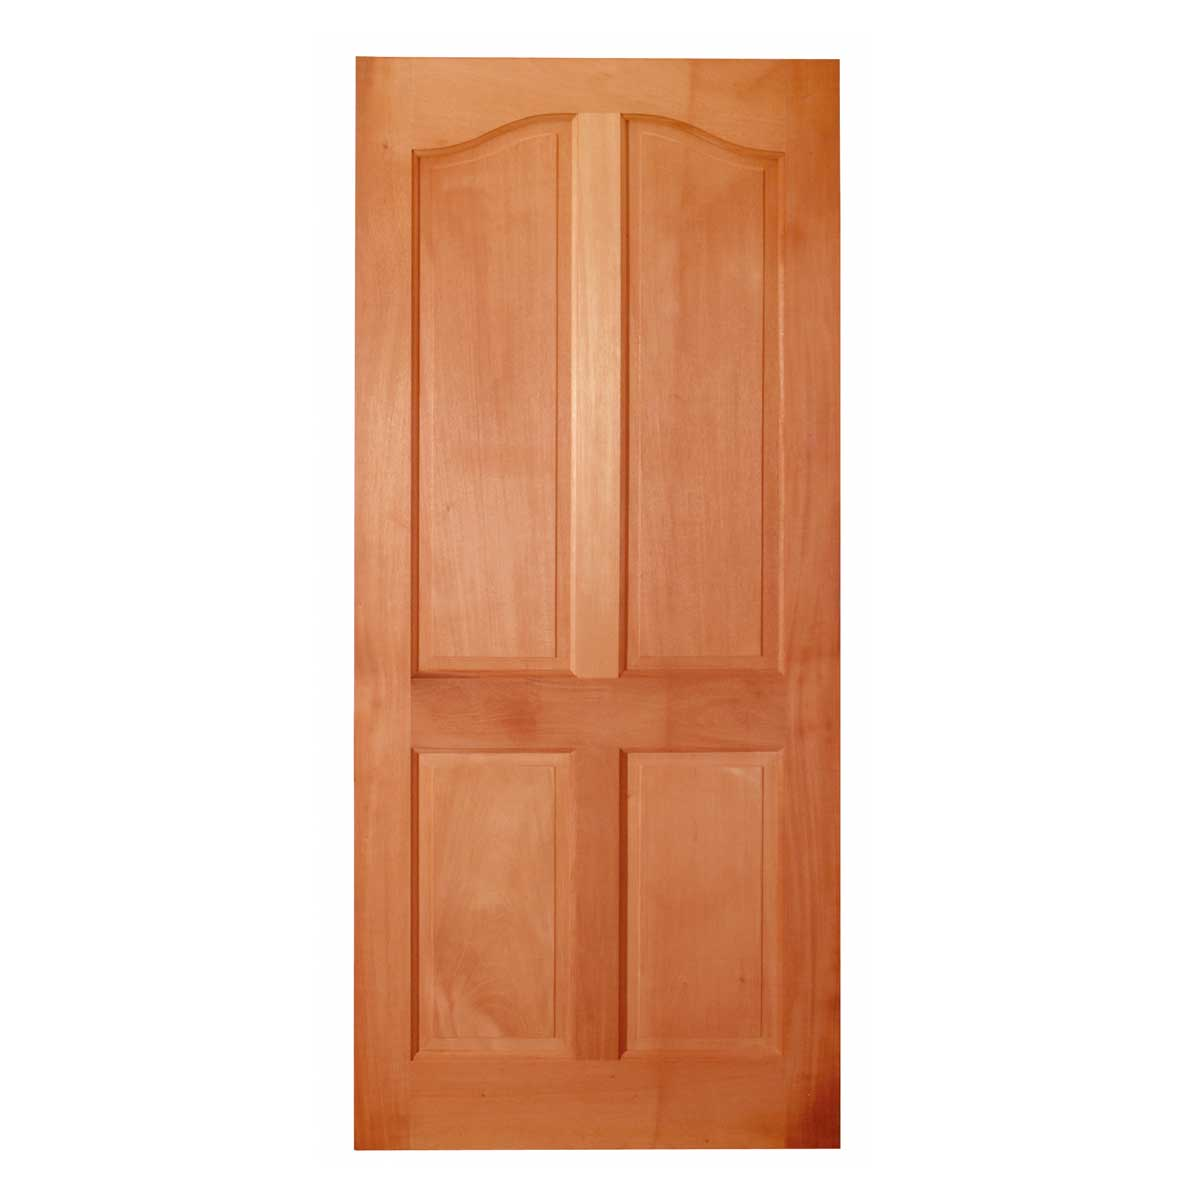 Wonderful image of  door cases itemno 92214 item name wood doors solid mahogany 24 4 panel with #9F3E17 color and 1200x1200 pixels